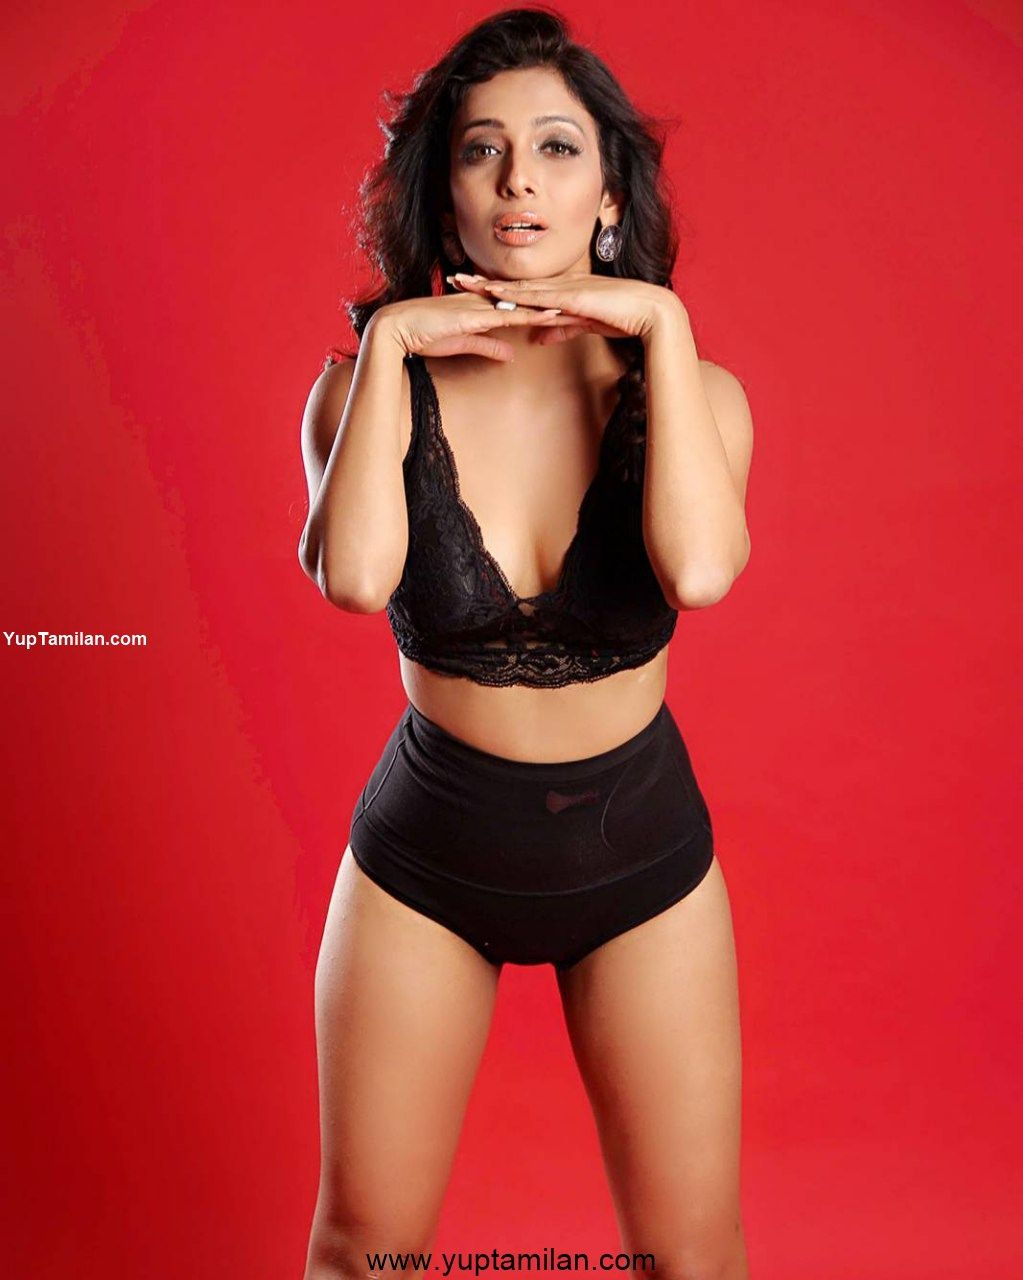 Heena Panchal Sexy Bikini Photos-Hottest Cleavage Pictures -5598